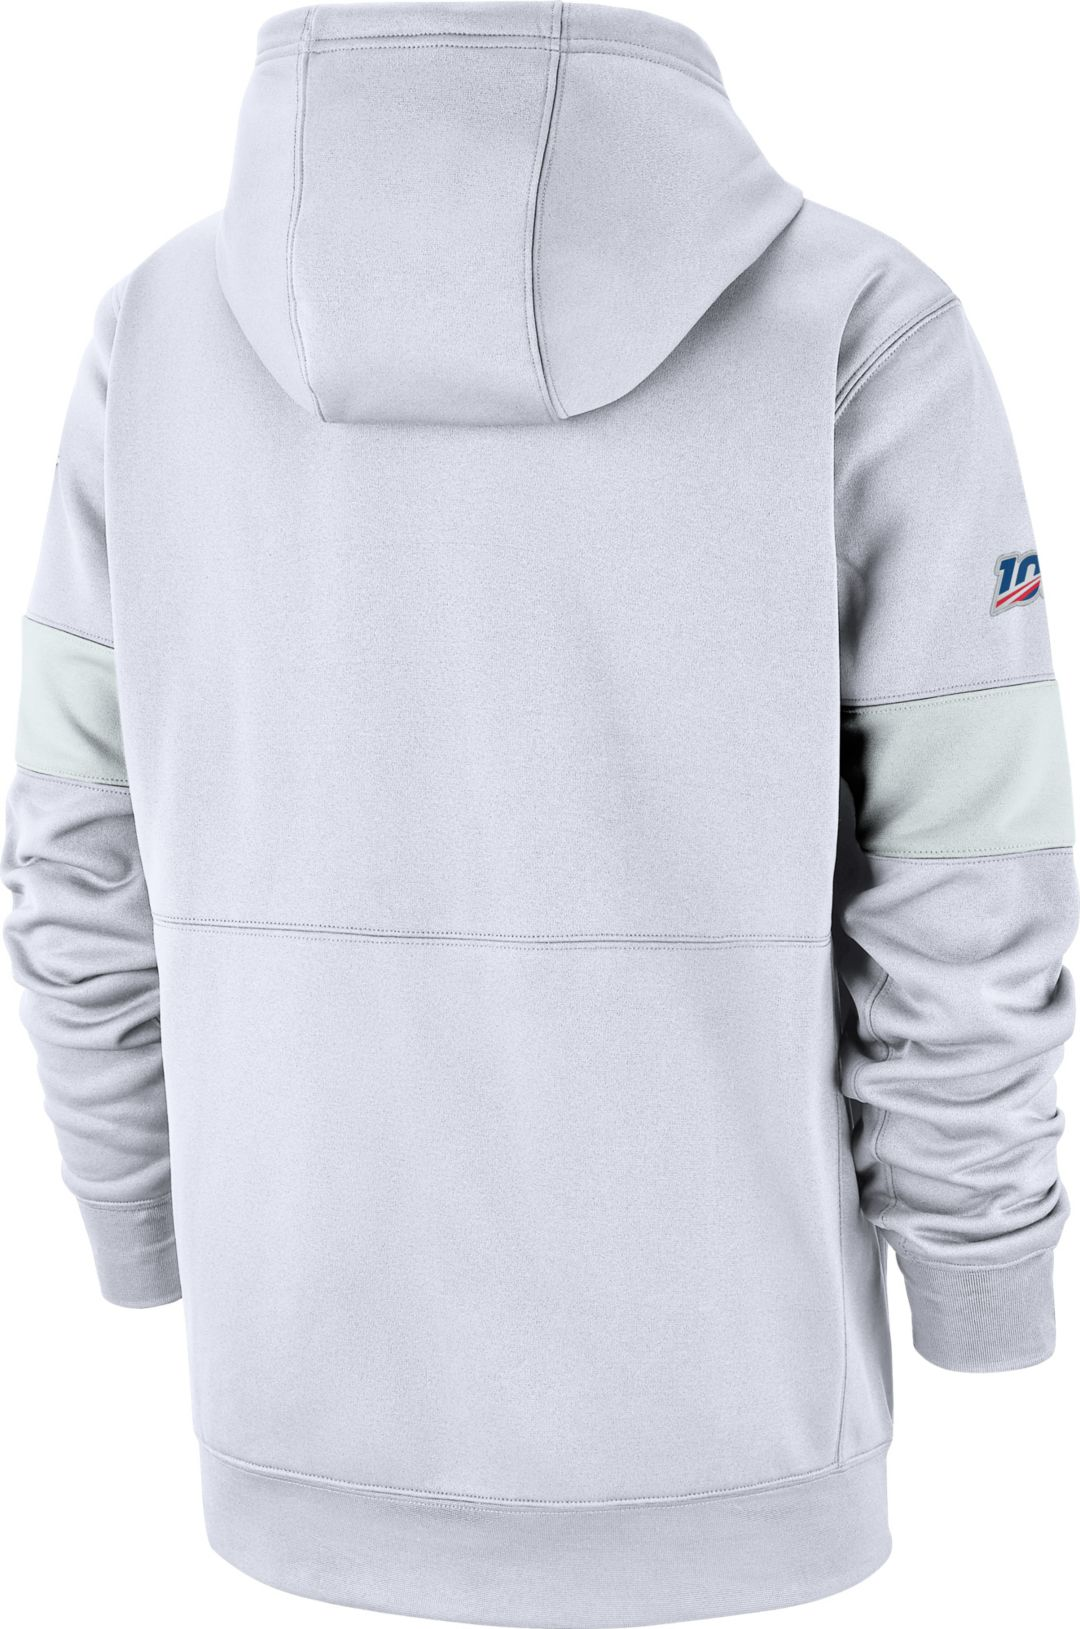 purchase cheap bffa6 e436e Nike Men's Green Bay Packers 100th Sideline Therma-FIT Pullover White Hoodie